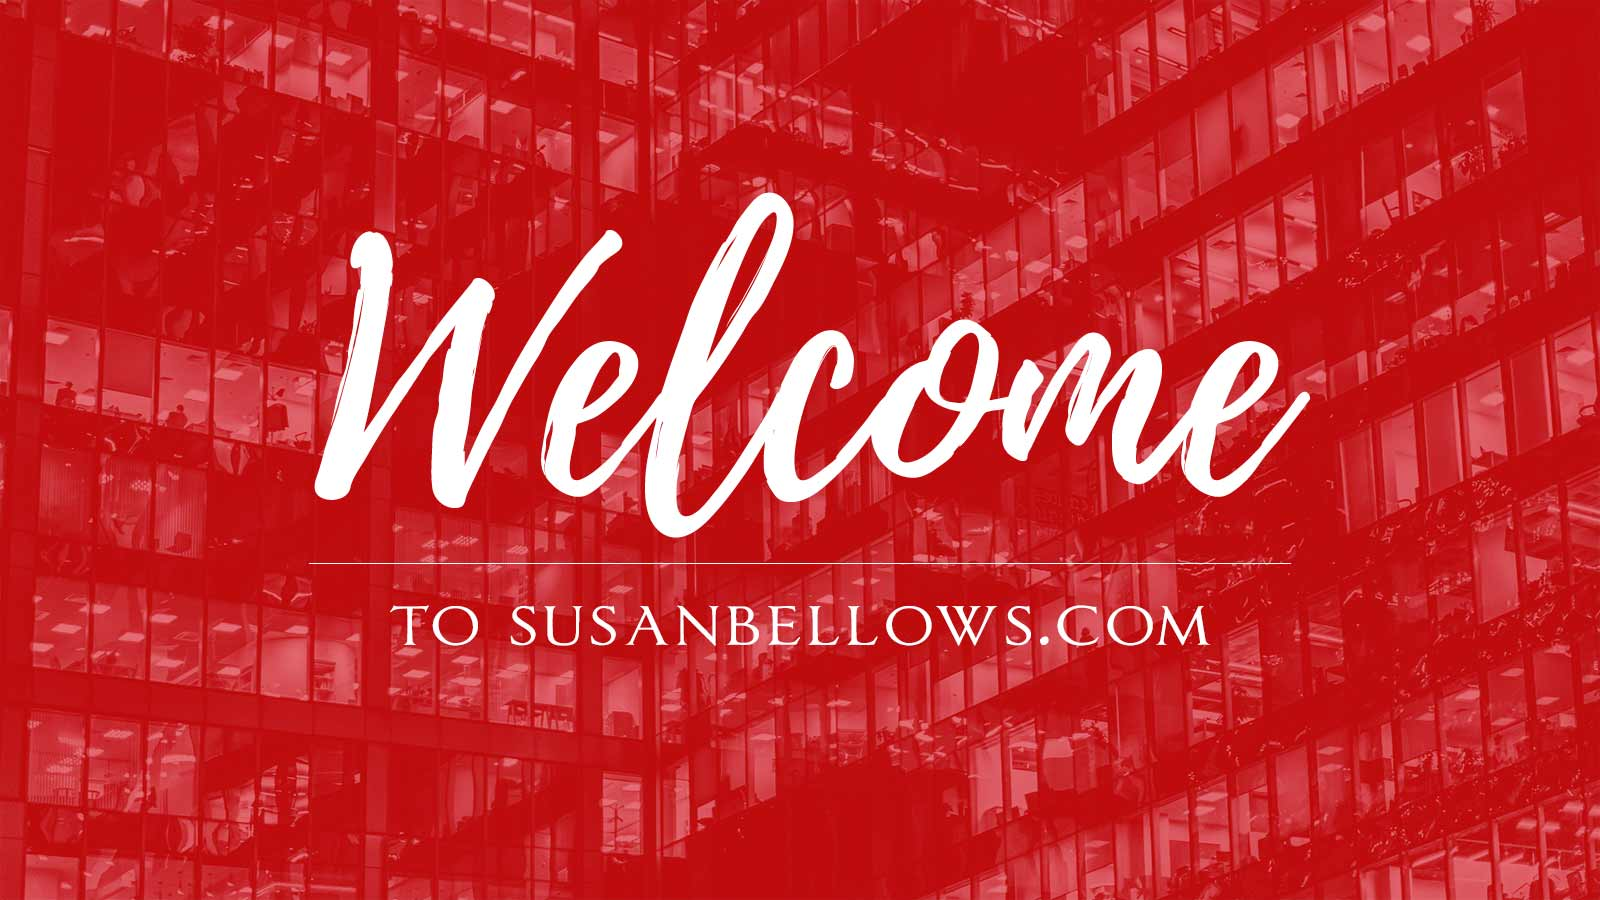 Welcome to Susanbellows.com